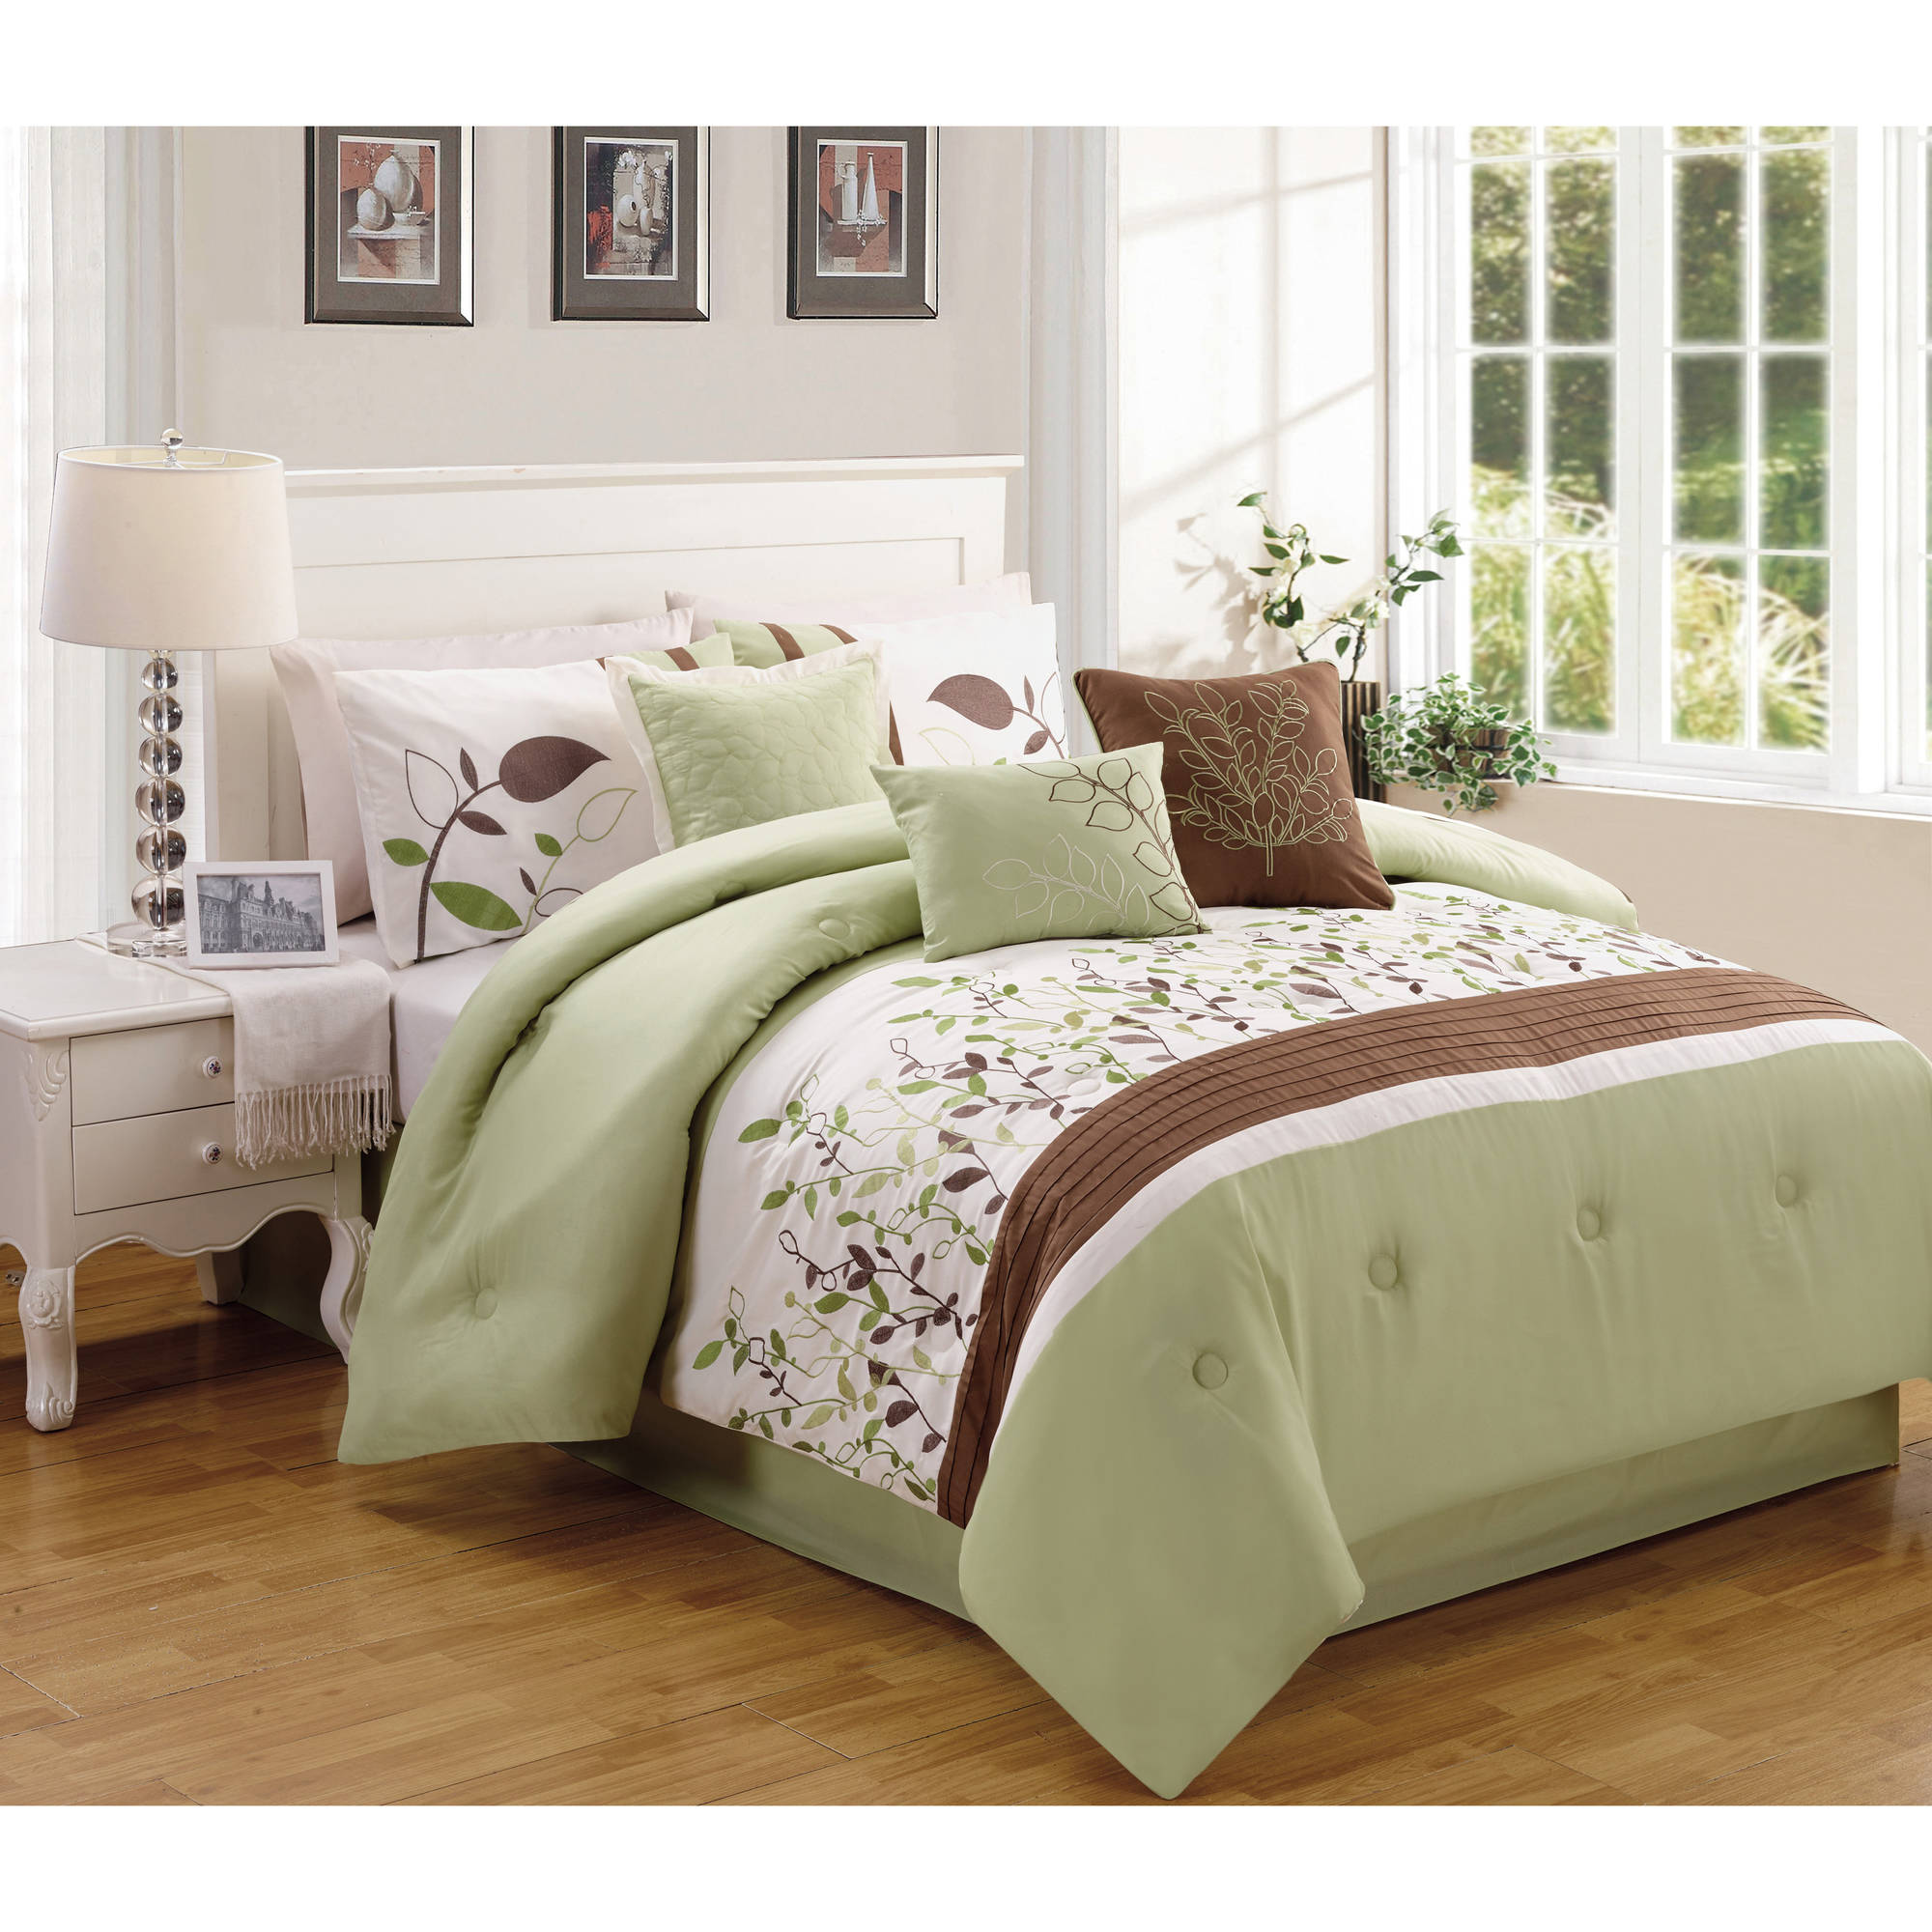 Better Homes and Gardens 7-Piece Sage & Brown Vines Bedding Comforter Set